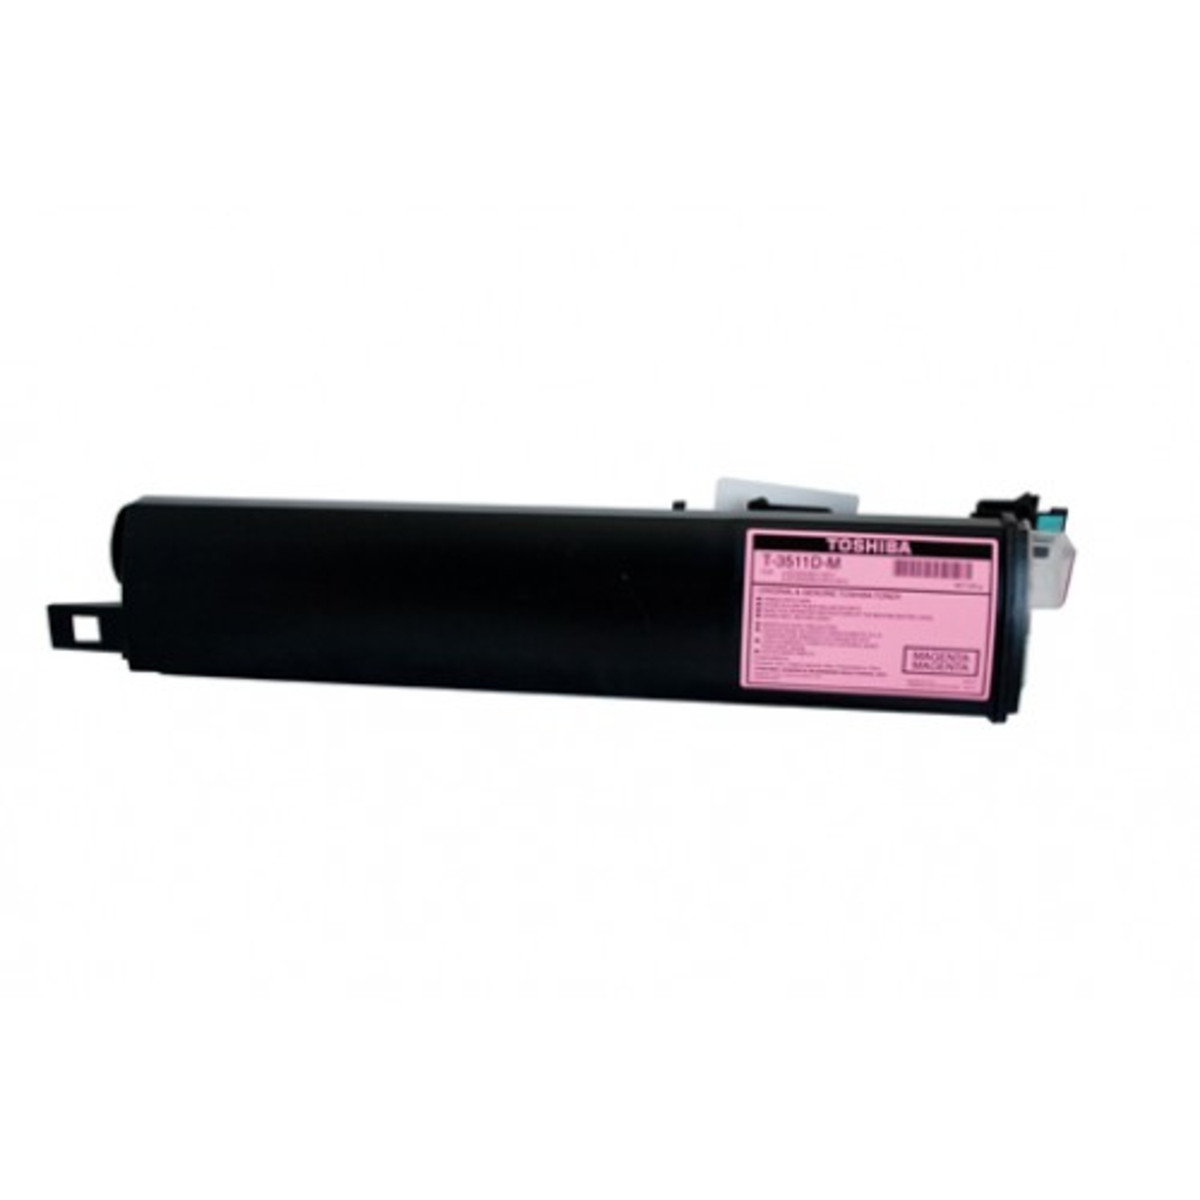 Toshiba T3511D Magenta Copier Cartridge